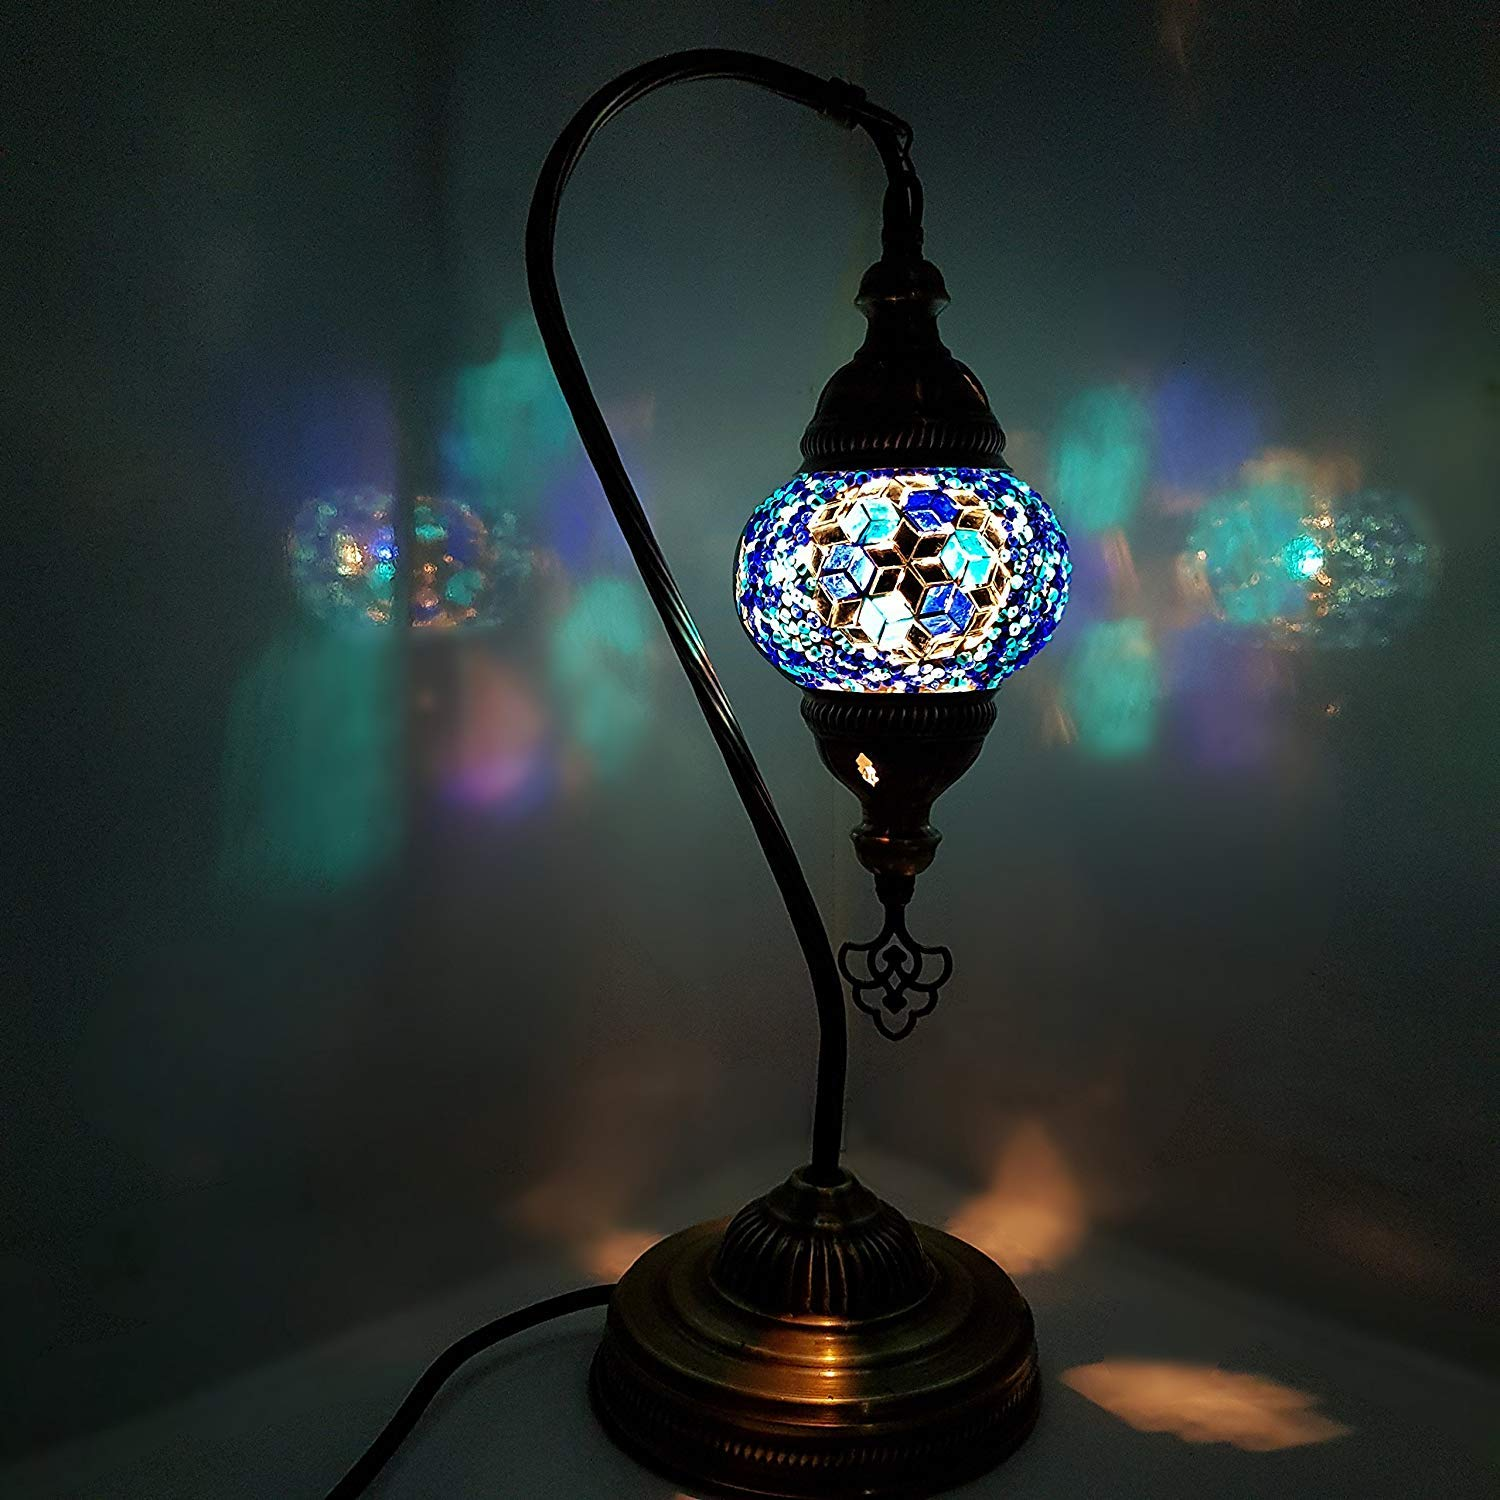 Handmade Colourful Small Glass Mosaic Turkish Moroccan Bohemian Eastern Style Desk Table Lamp Light with US Plug